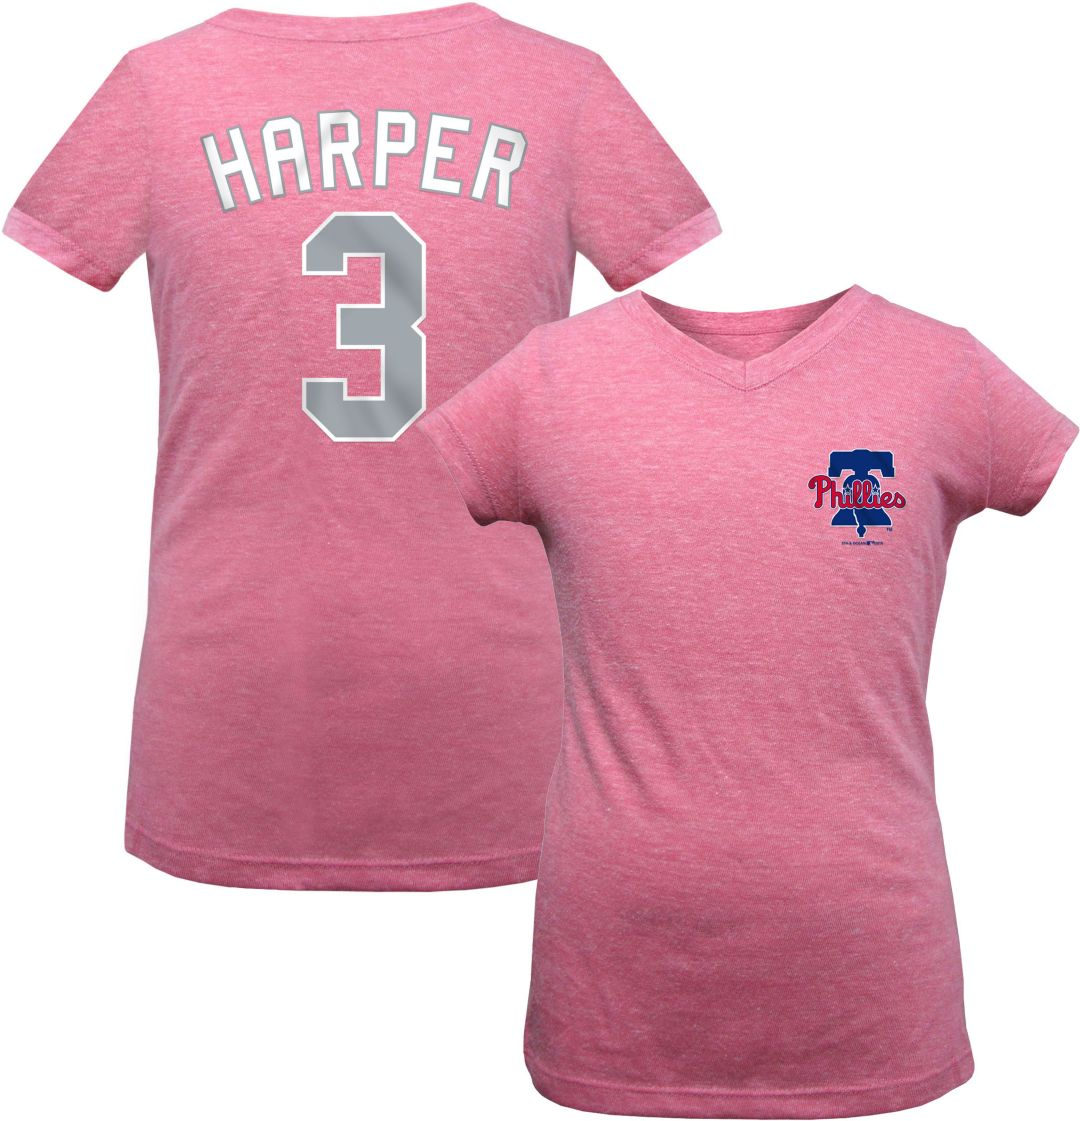 on sale d382d 50745 New Era Youth Girls' Philadelphia Phillies Bryce Harper Tri-Blend T-Shirt